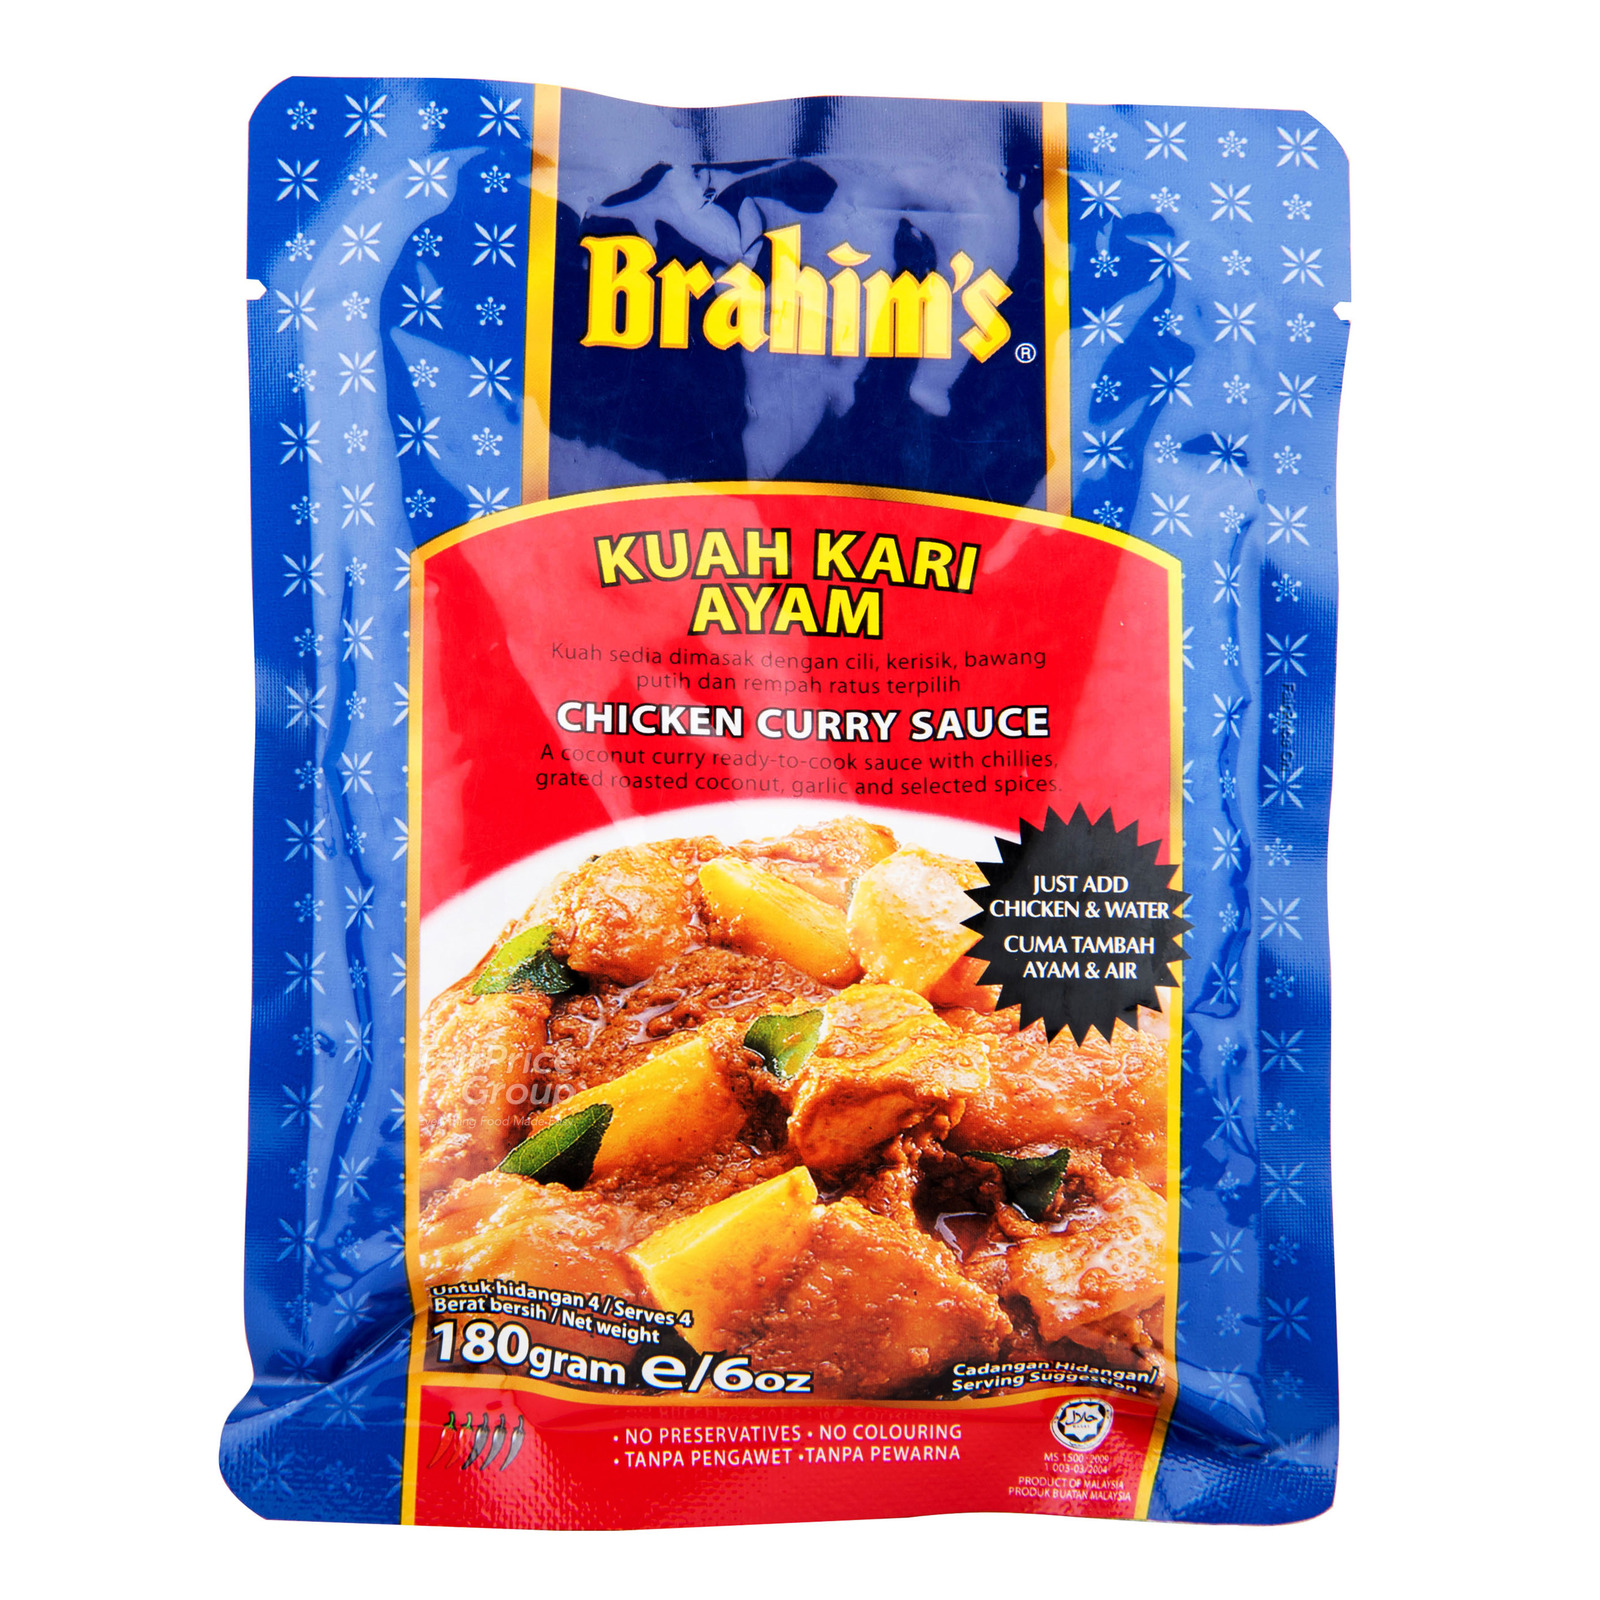 Brahim's Curry Sauce - Chicken